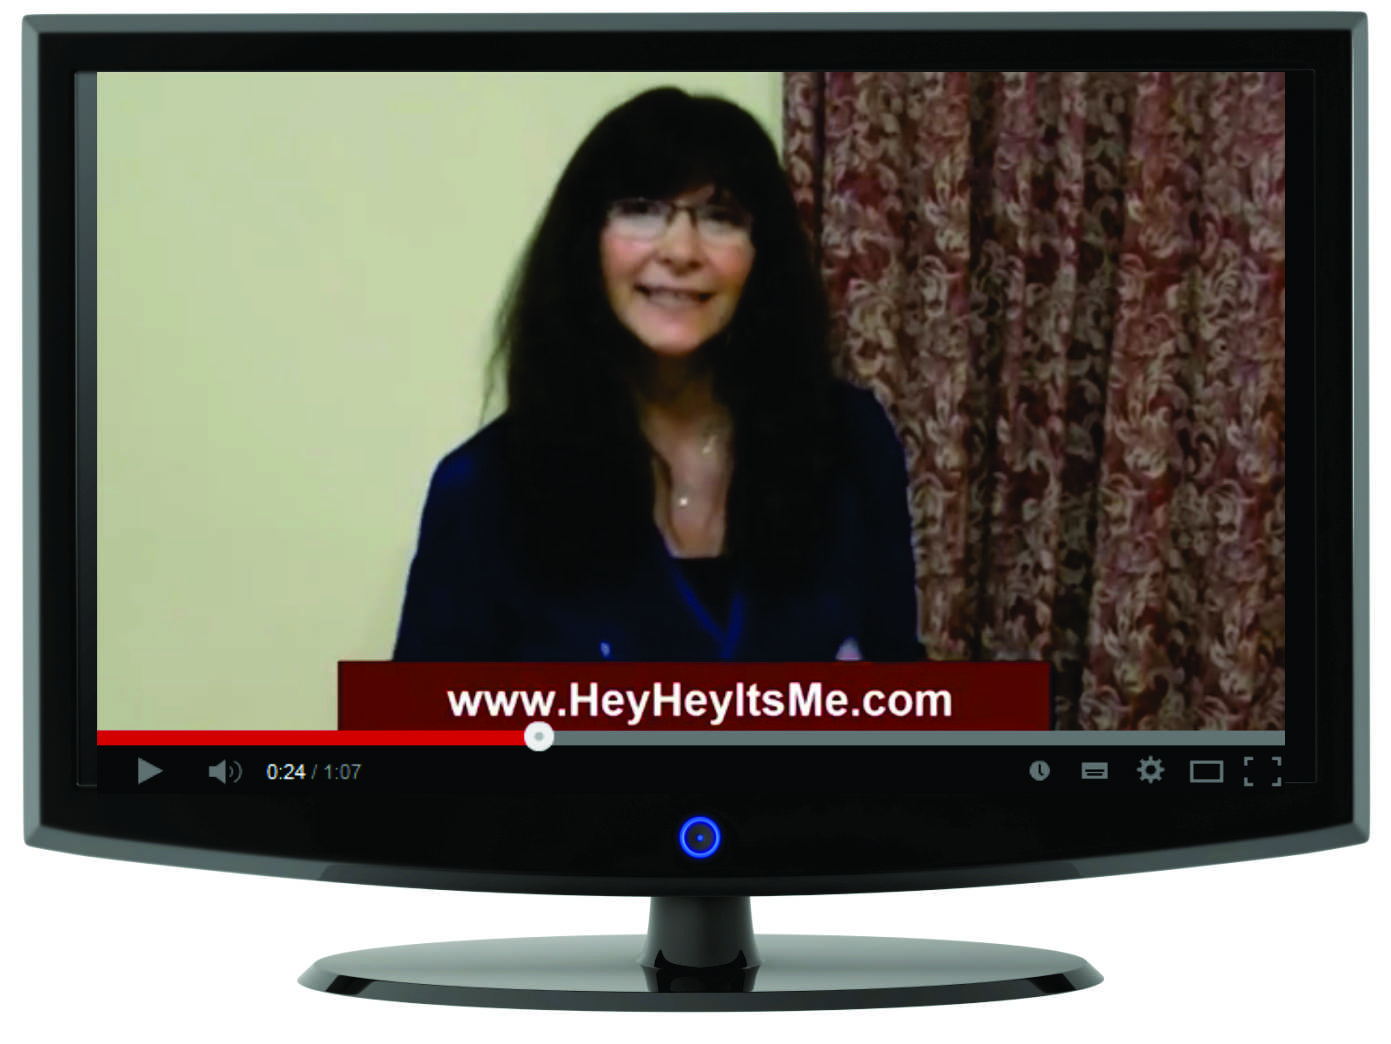 Anna Vidali Psychotherapist & Clinical Hypnotherapist Testimonial of Hey Hey It's Me